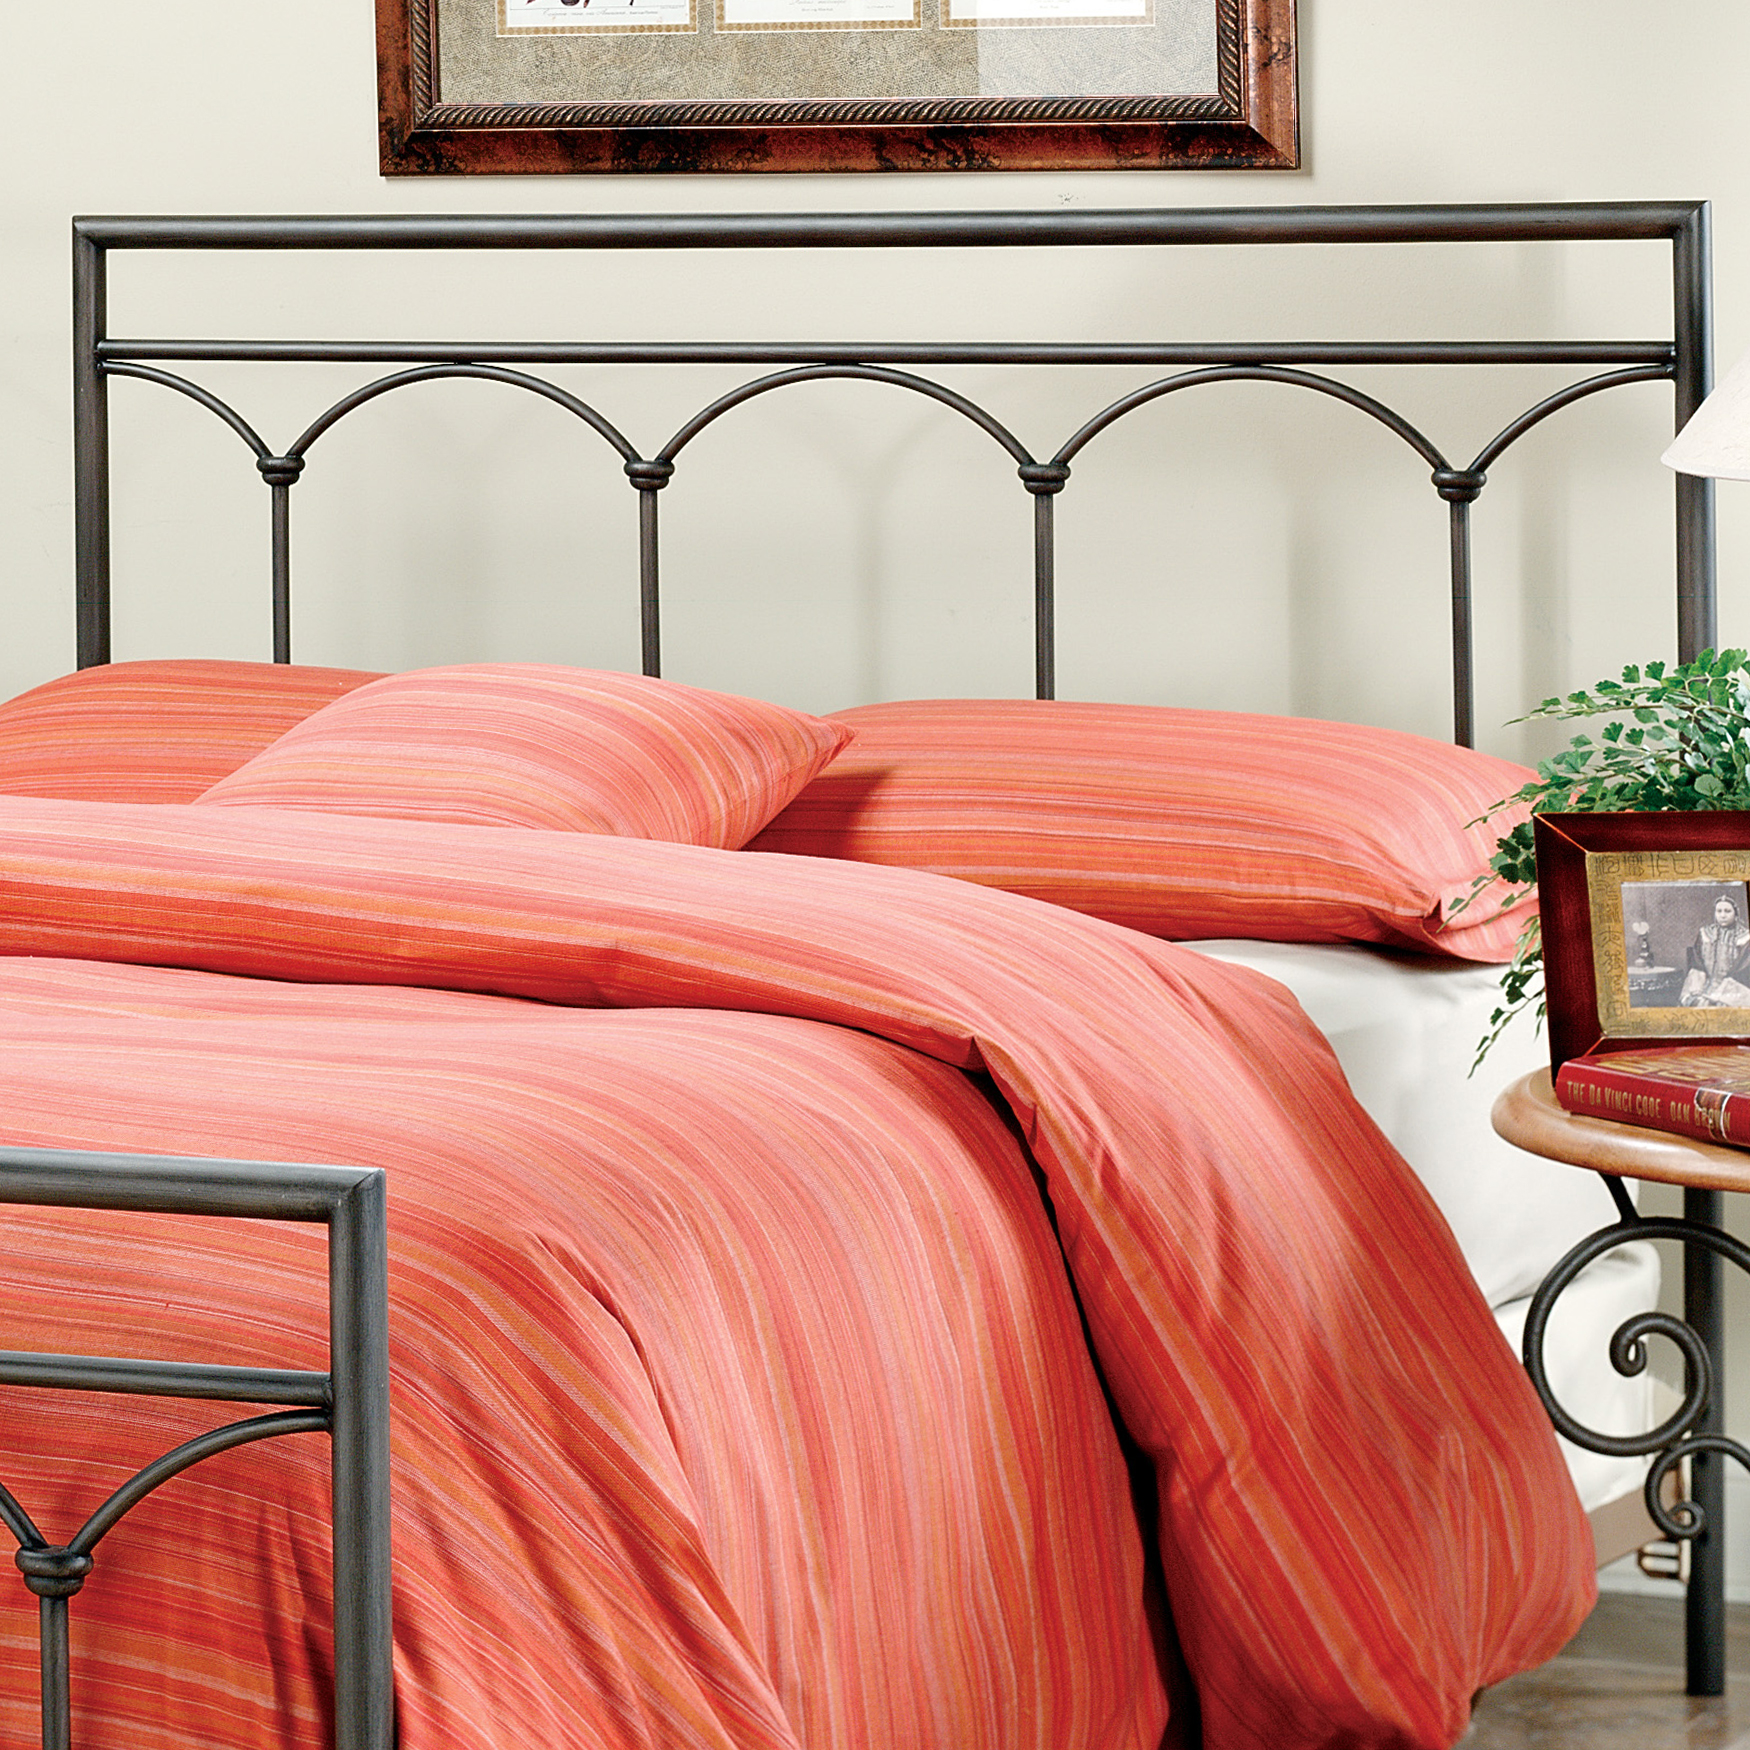 Mckenzie Headboard with Headboard Frame,